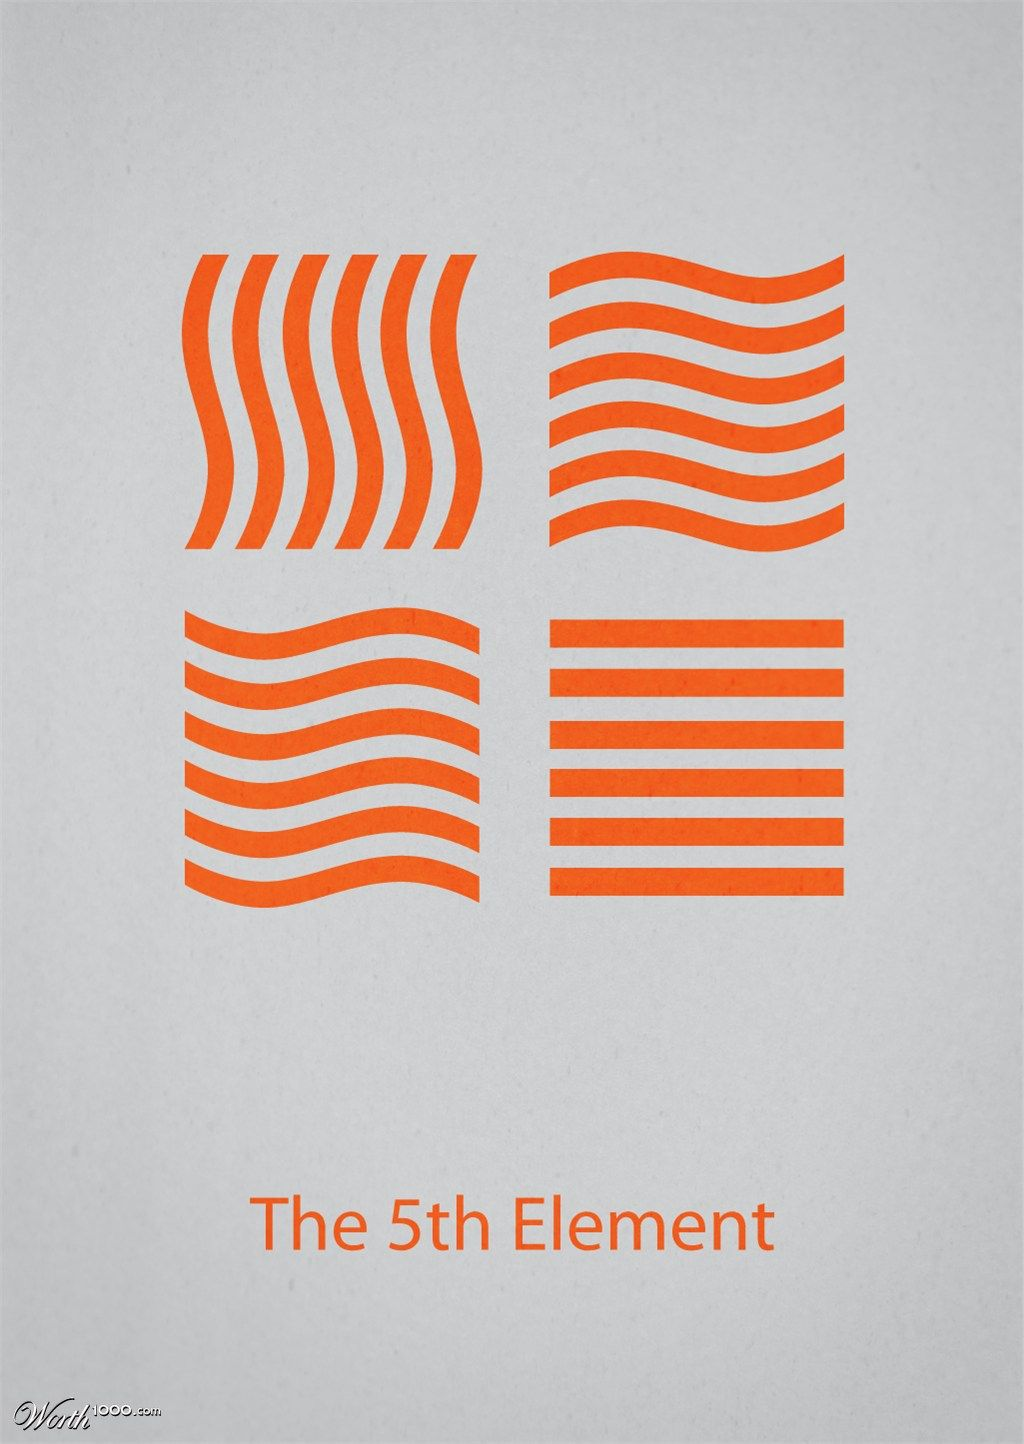 5Th Element 1024X2000 Geek Out Pinterest Movie Ideas And Designs